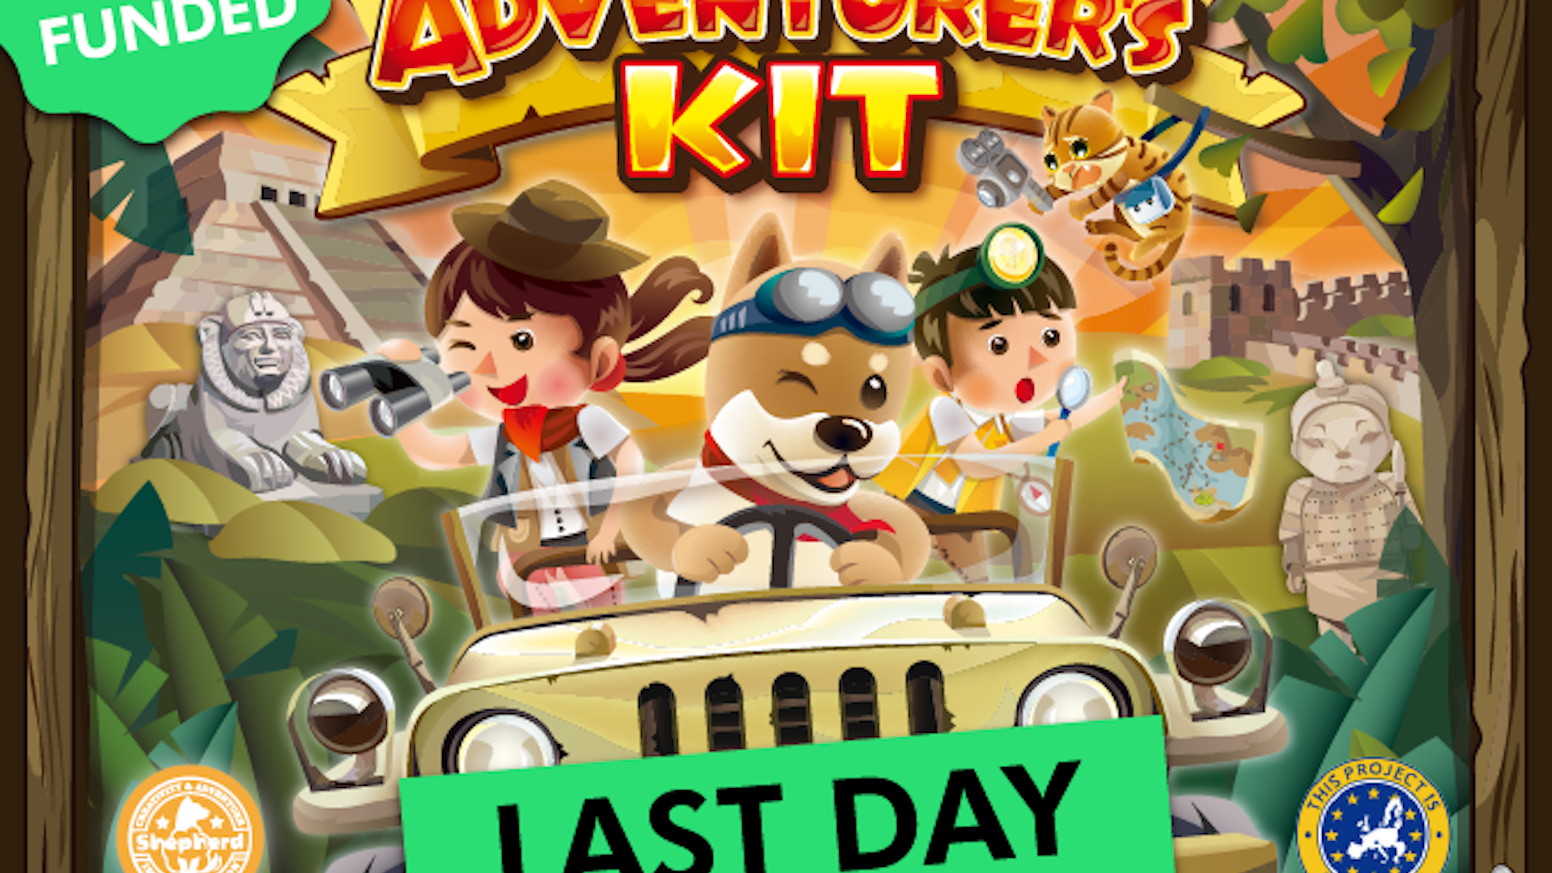 Adventurer's Kit is a culture exploration + genuine artifact excavation game that brings kids a true adventure experience.